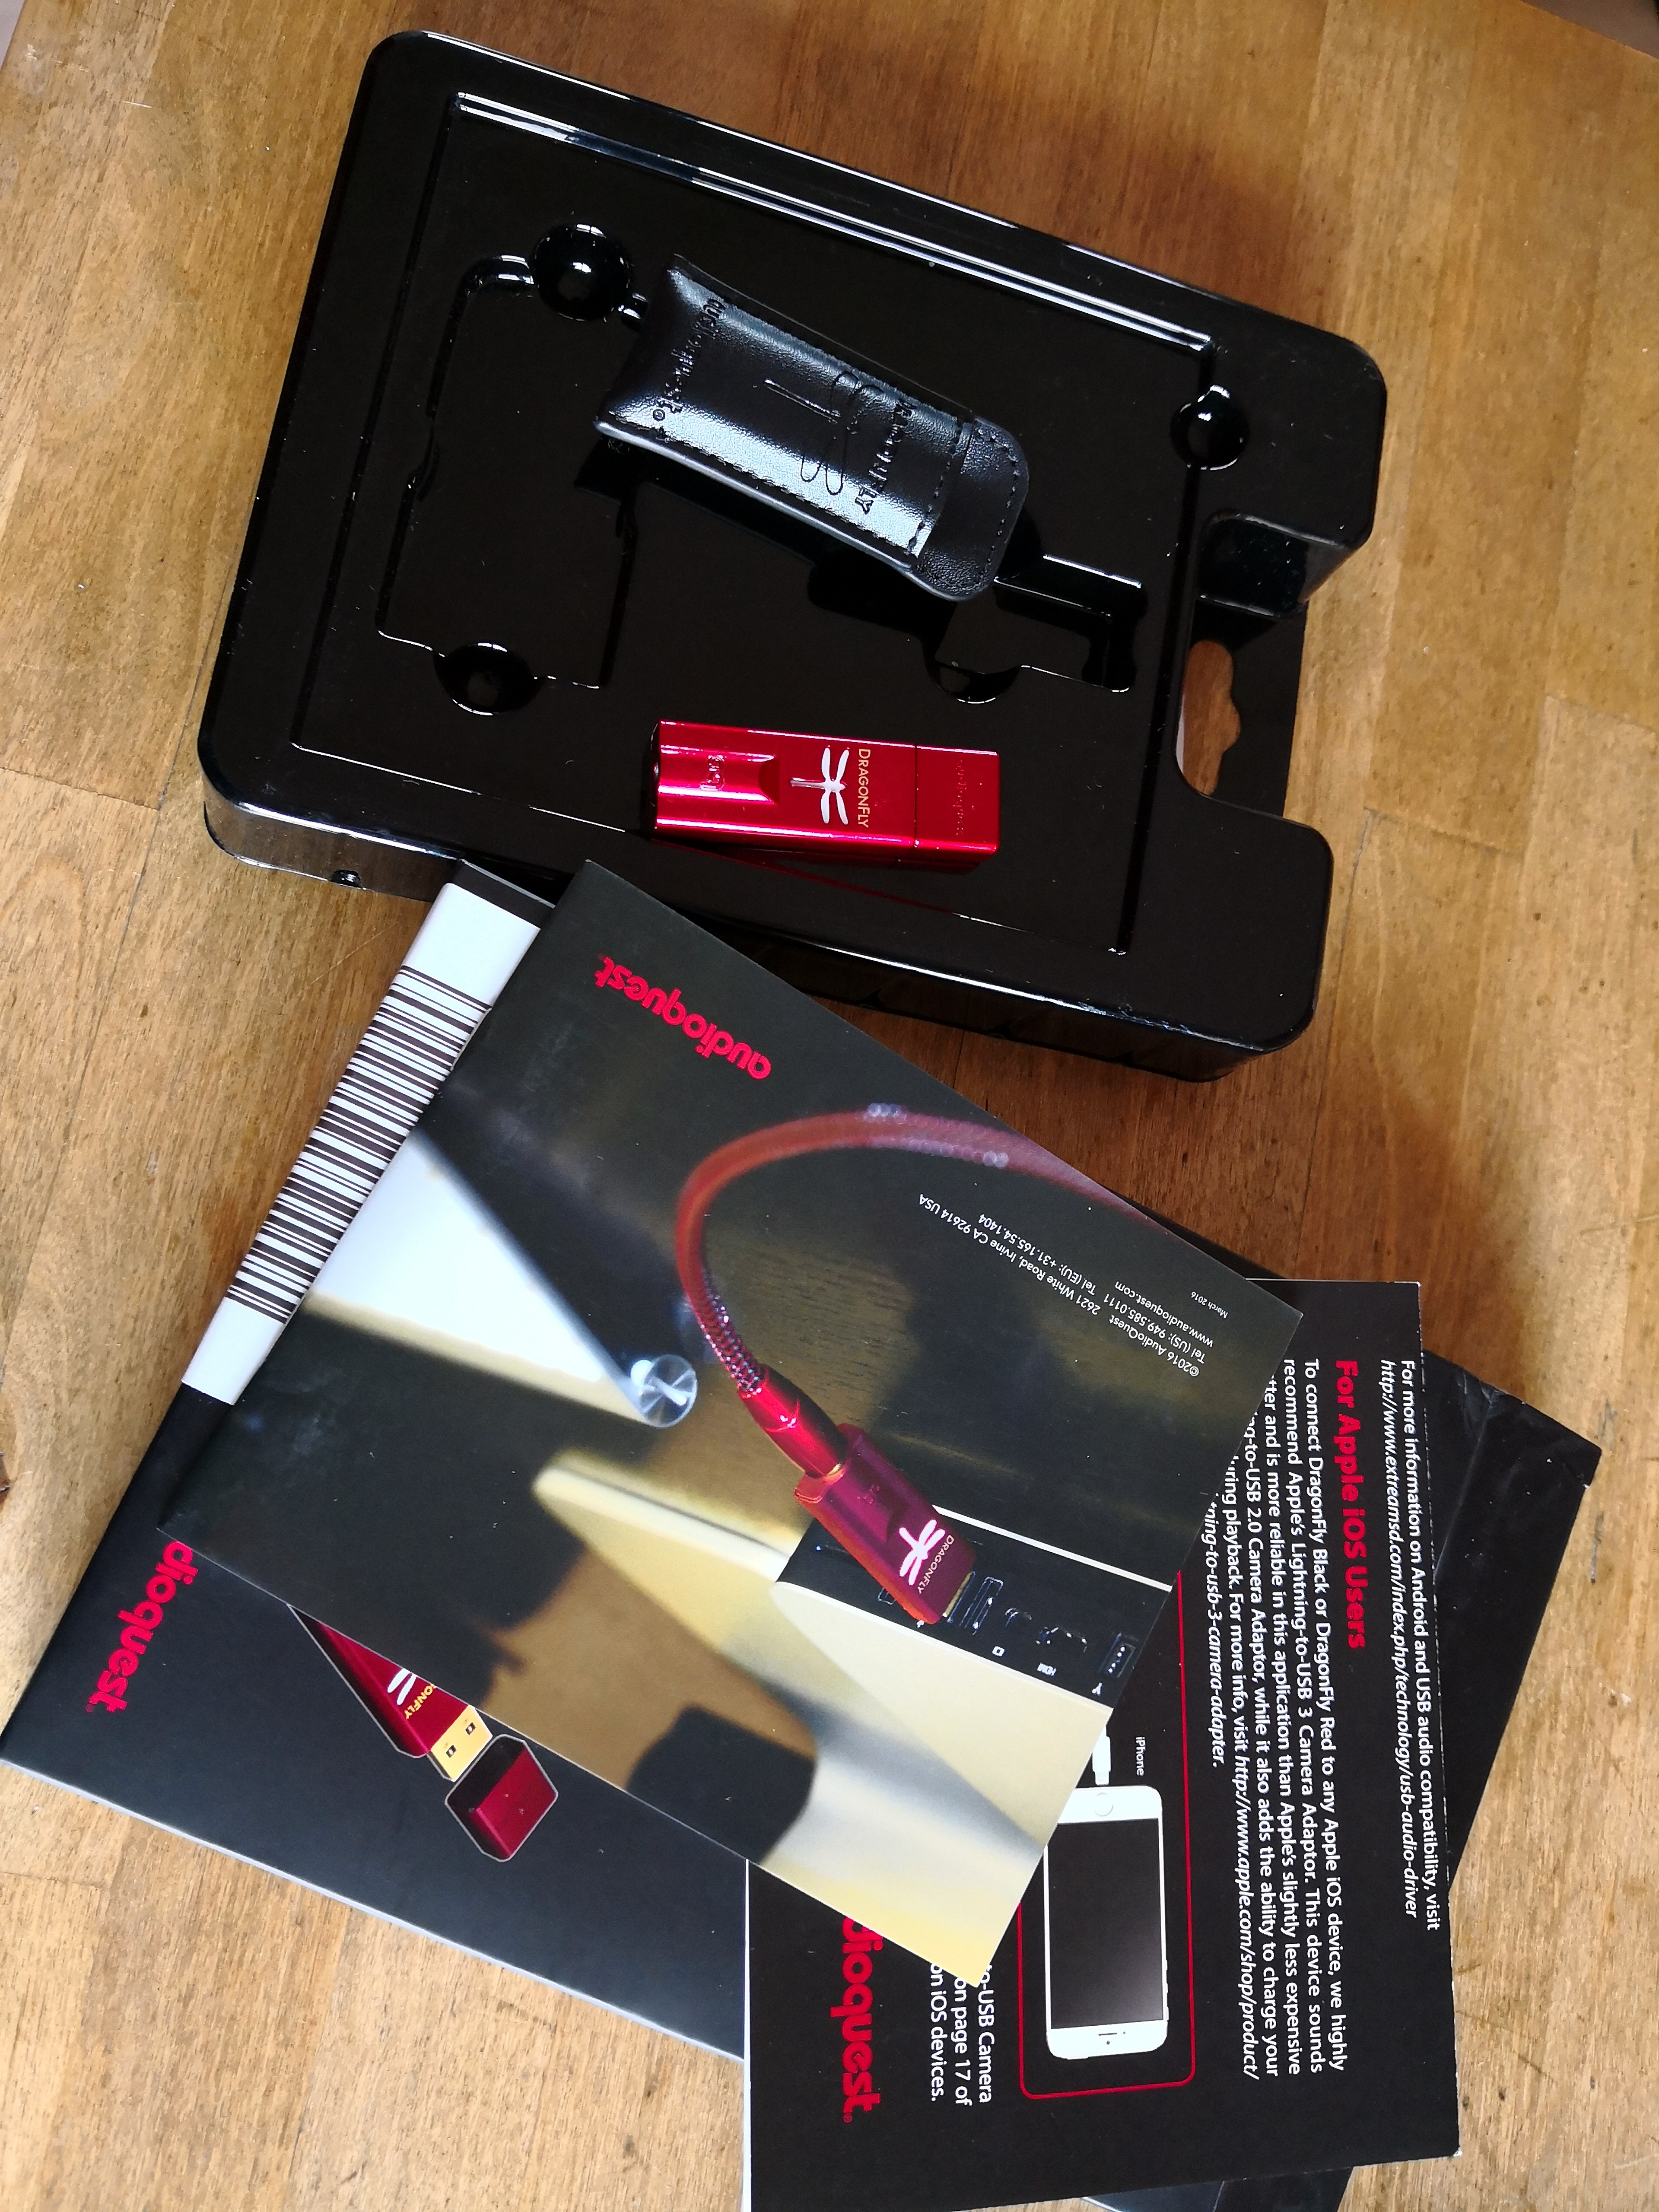 SOLD: Audioquest DragonFly Red | Headphone Reviews and